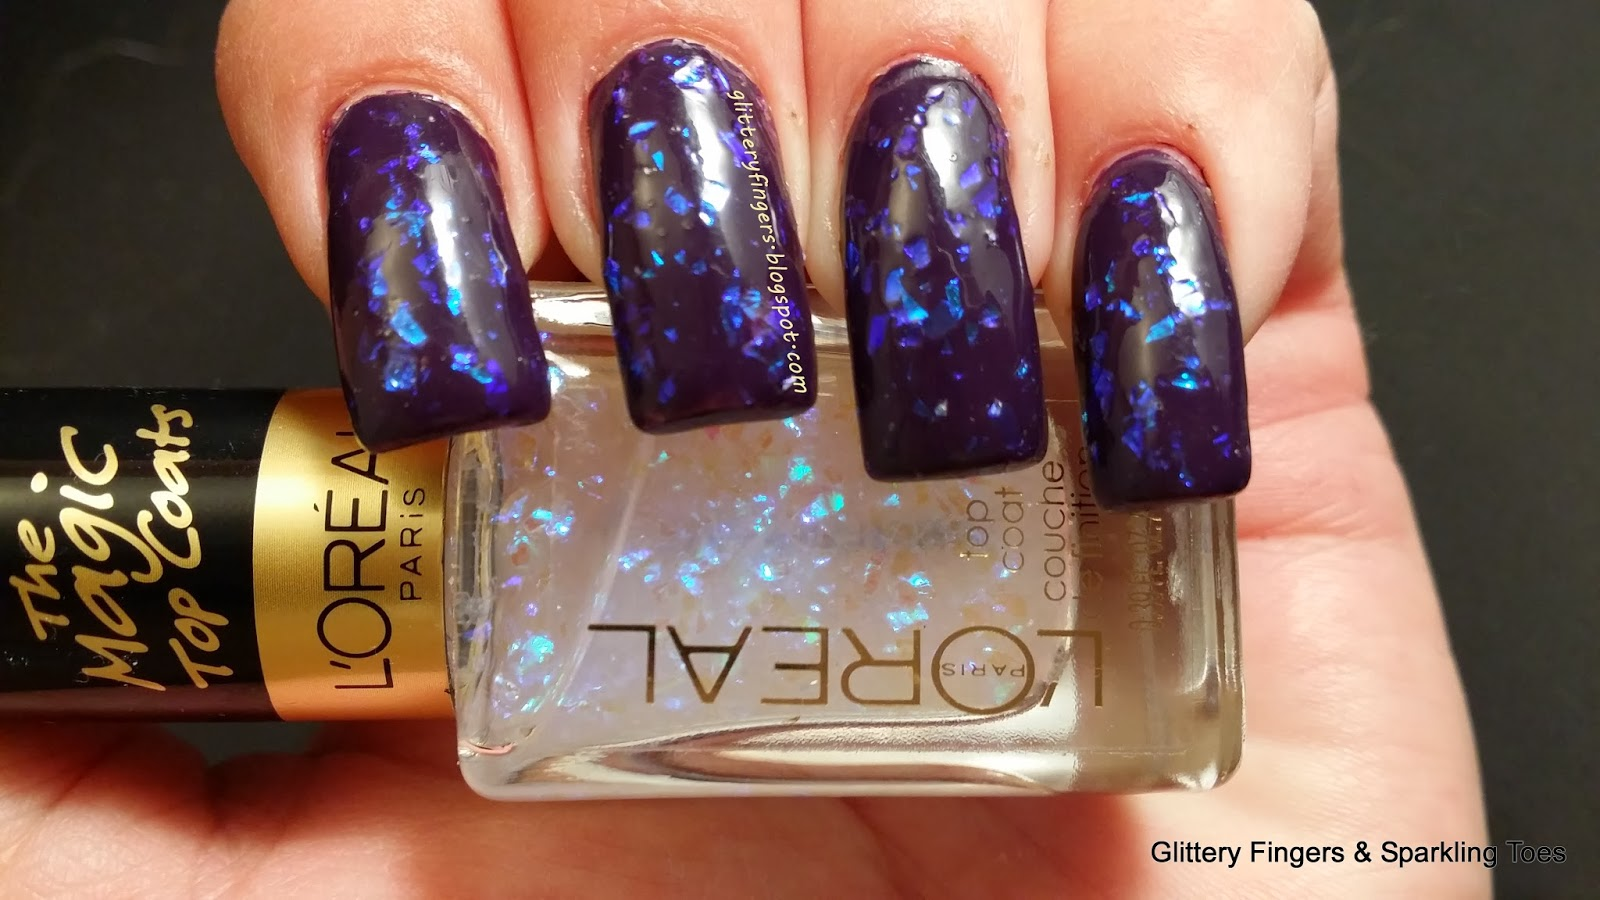 Glittery Fingers & Sparkling Toes: Review: Loreal The Magic Top ...